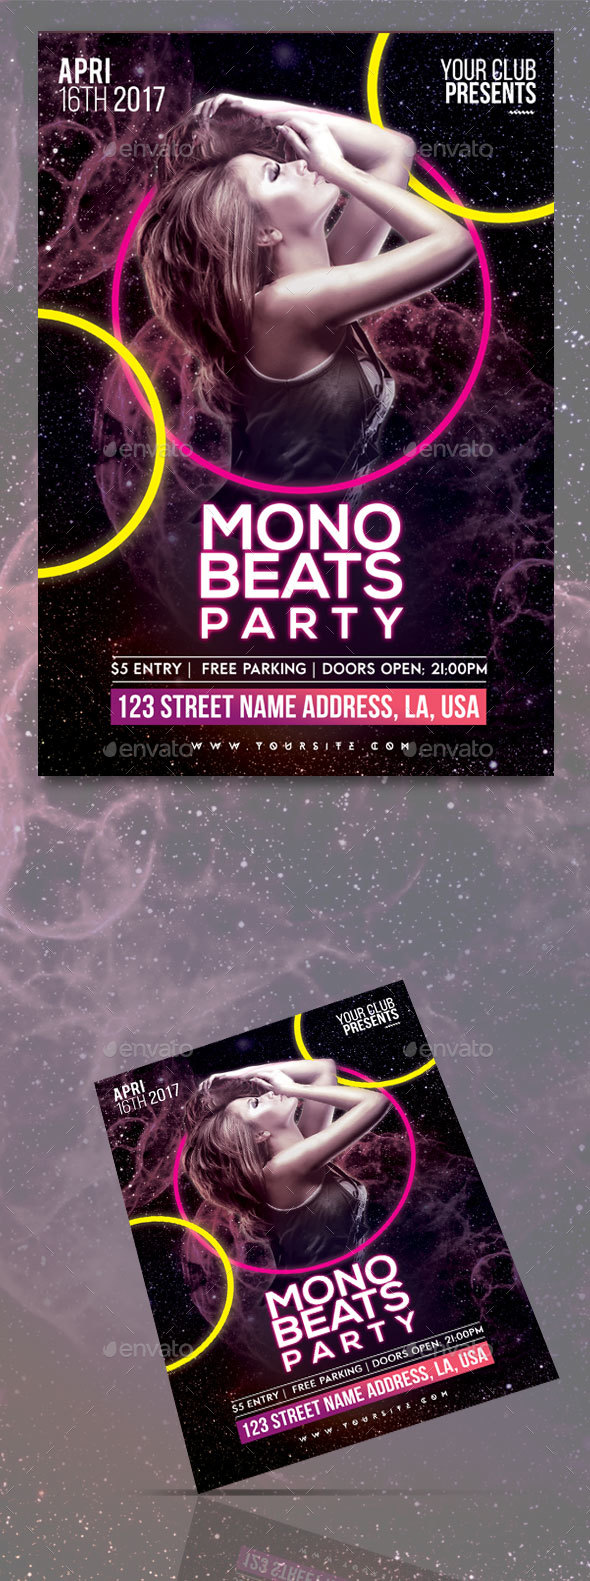 Mono Beats Party Flyer Template - Clubs & Parties Events